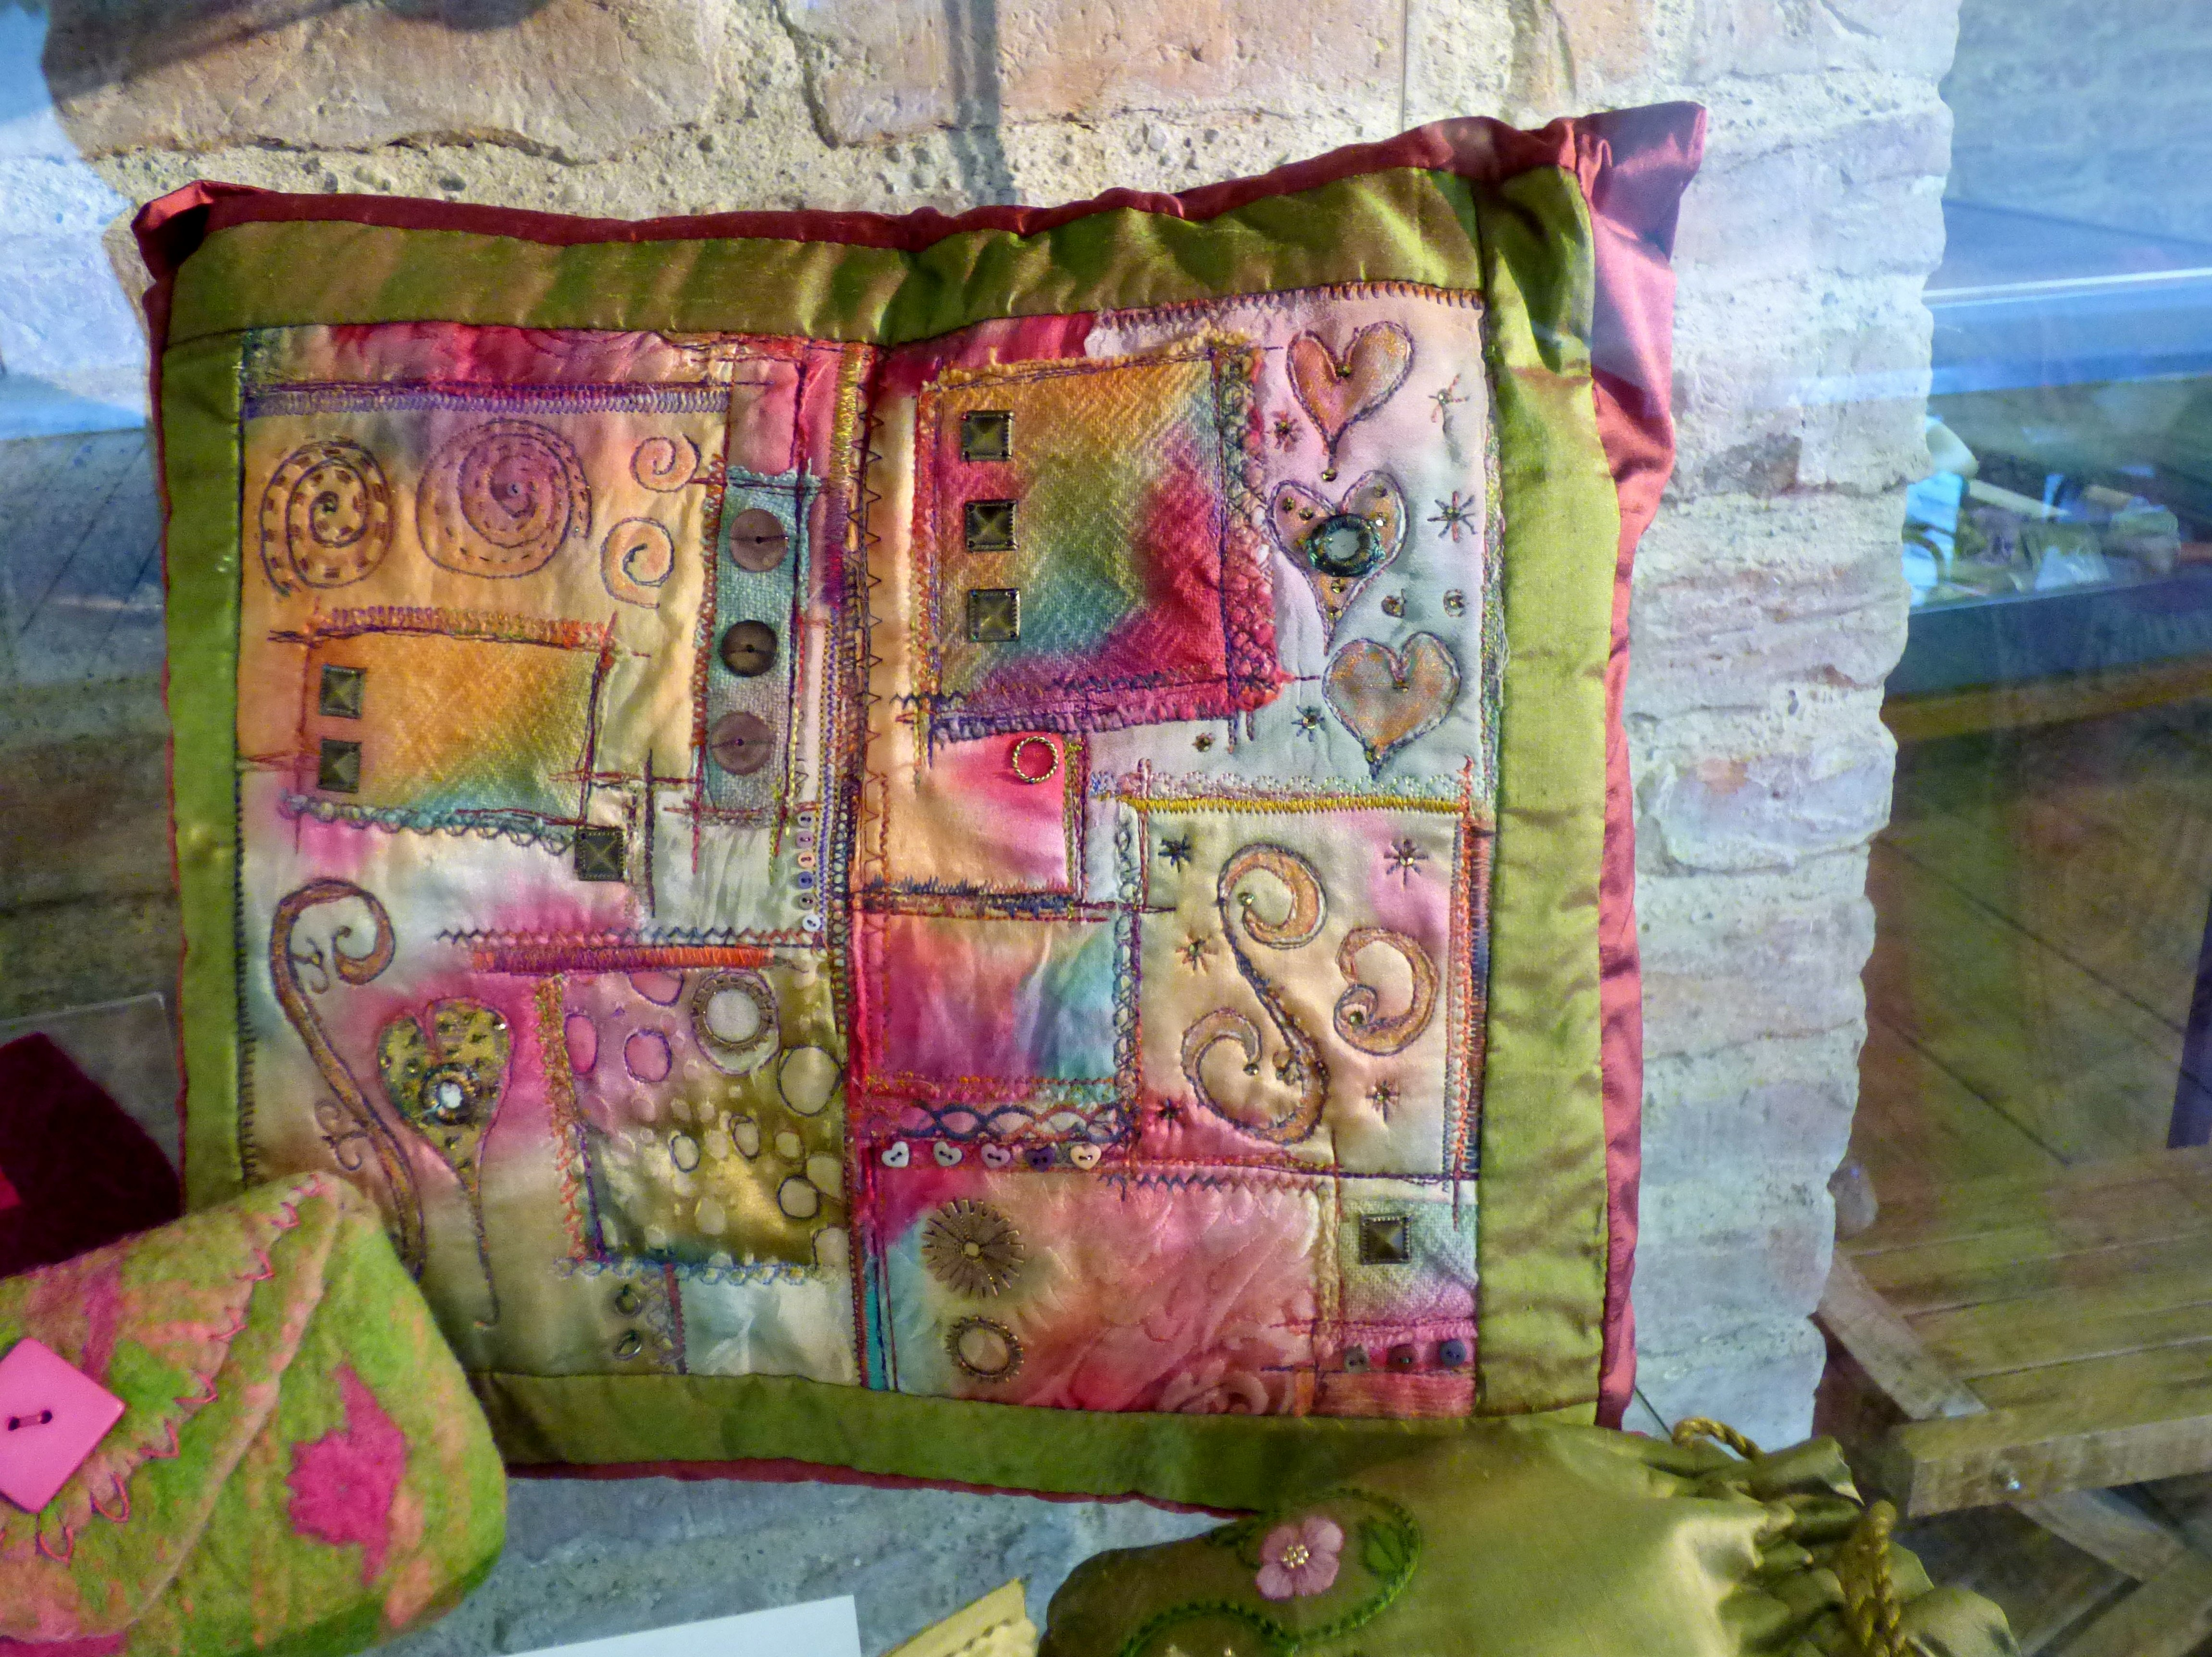 SPACE-DYED CUSHION by Joy Madden, dyed white fabrics with stitch